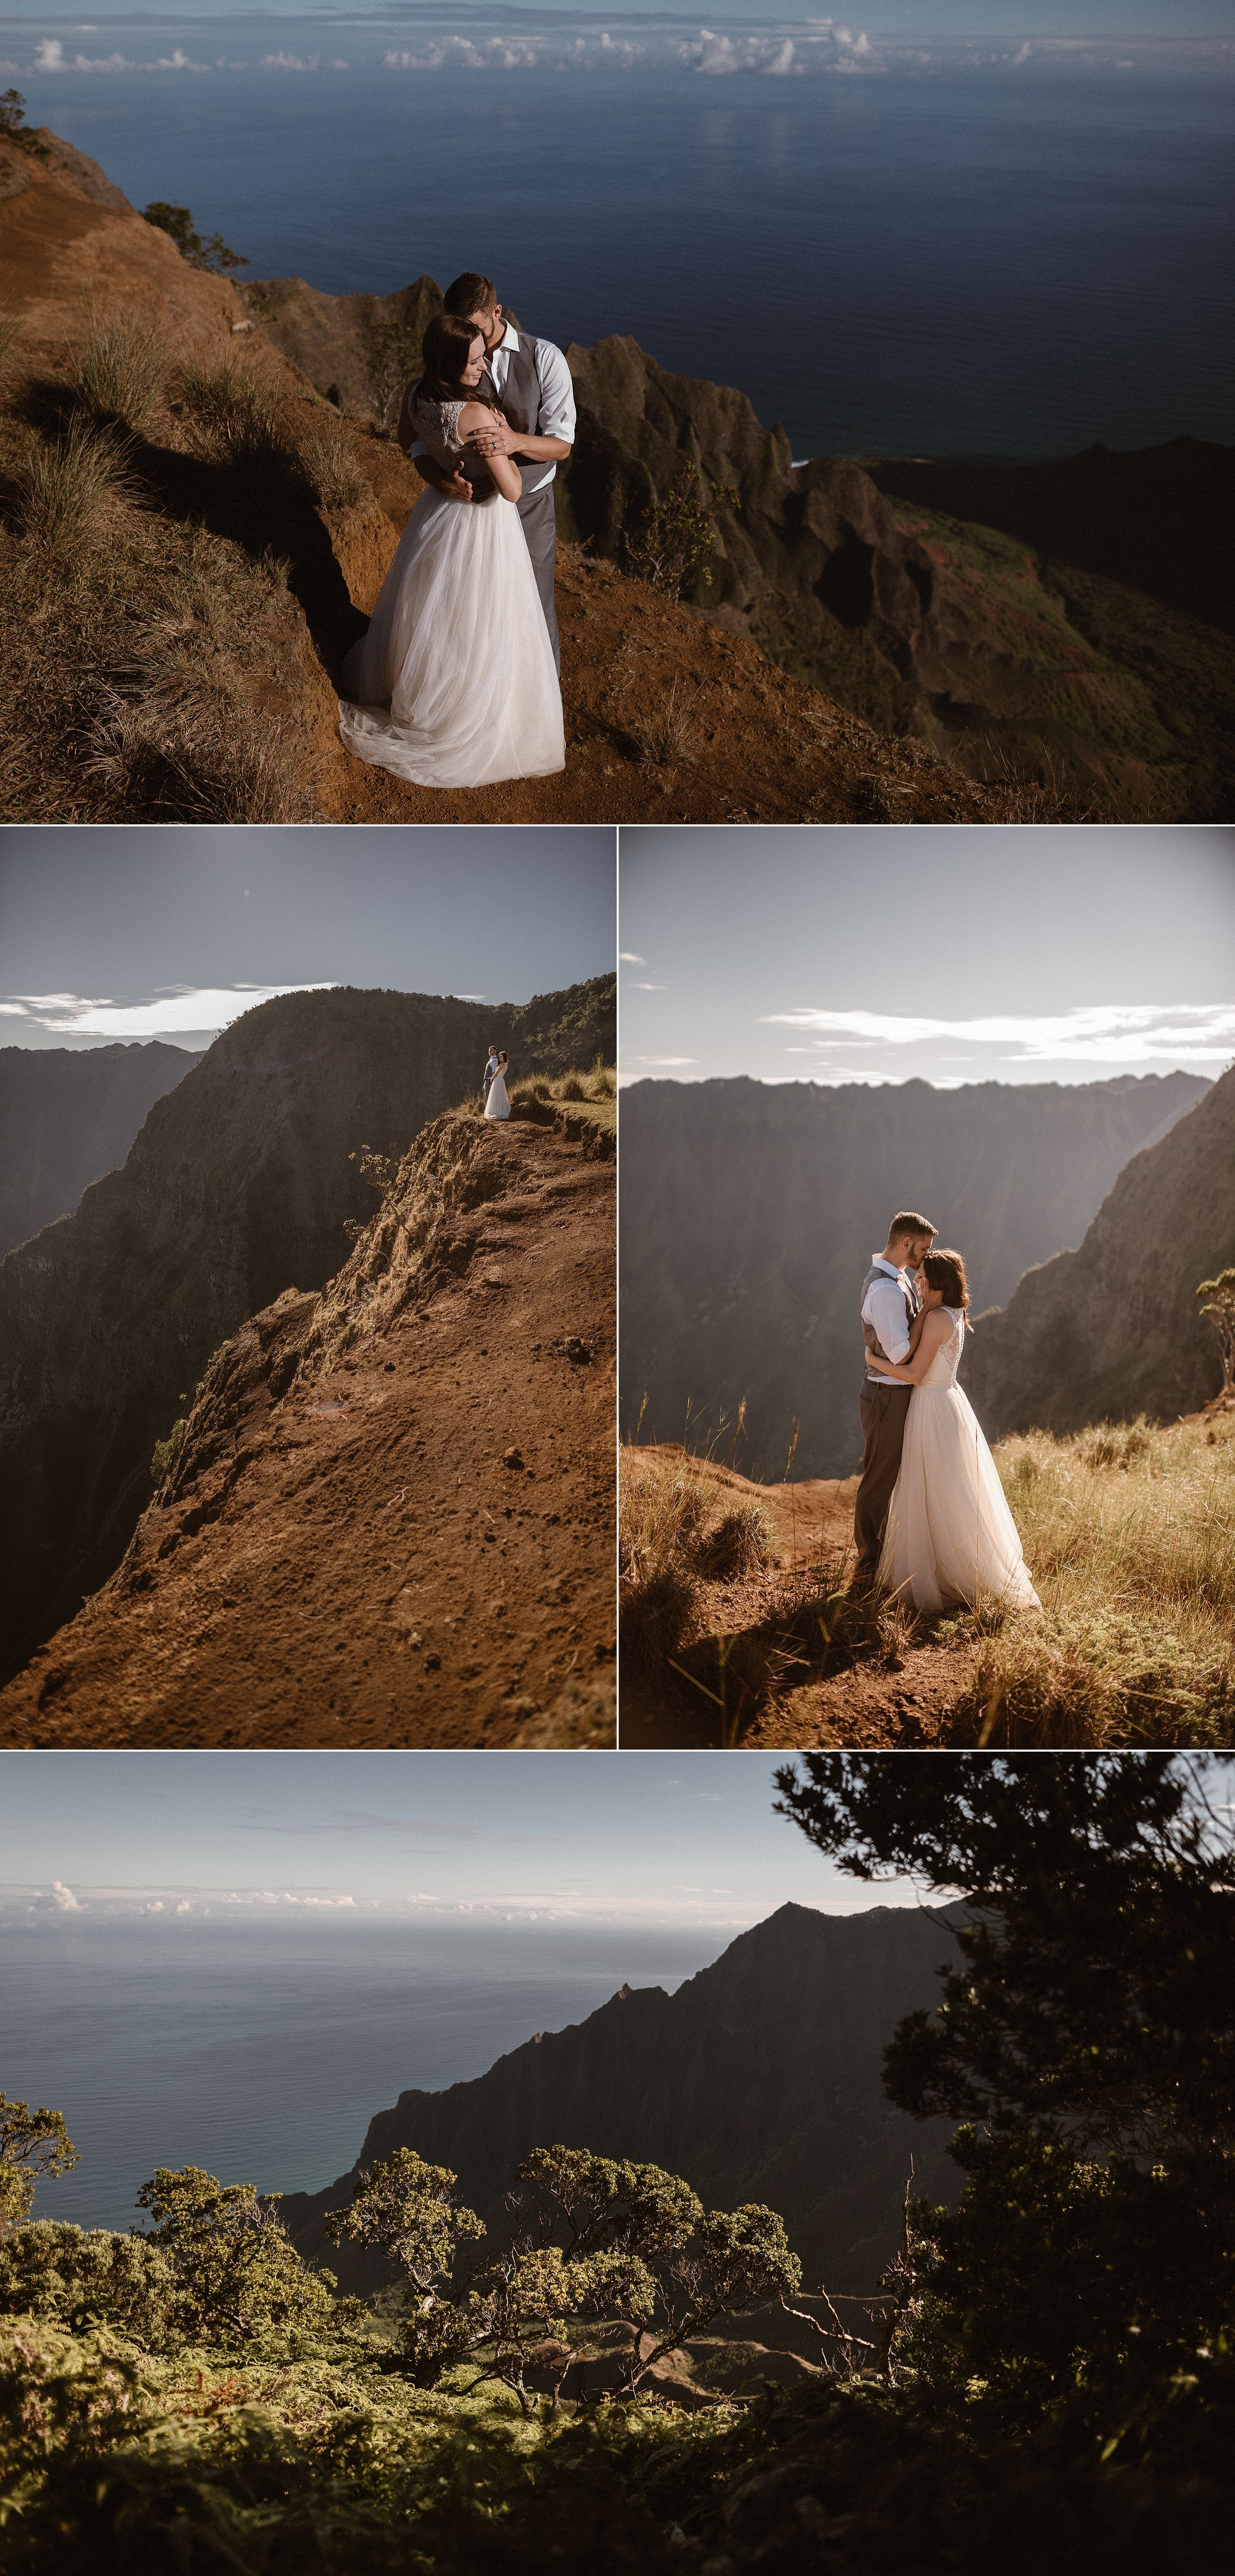 Among the warm Hawaiian sunlight and hight above the Kauai beaches along the Kalepa Ridge Trail Kourtney and Chris had found the perfect location for their intimate elopement. Their destination wedding was nothing traditional as they hiked in Kokee State Park for a private elopement ceremony with just their traveling wedding photographer Maddie Mae.